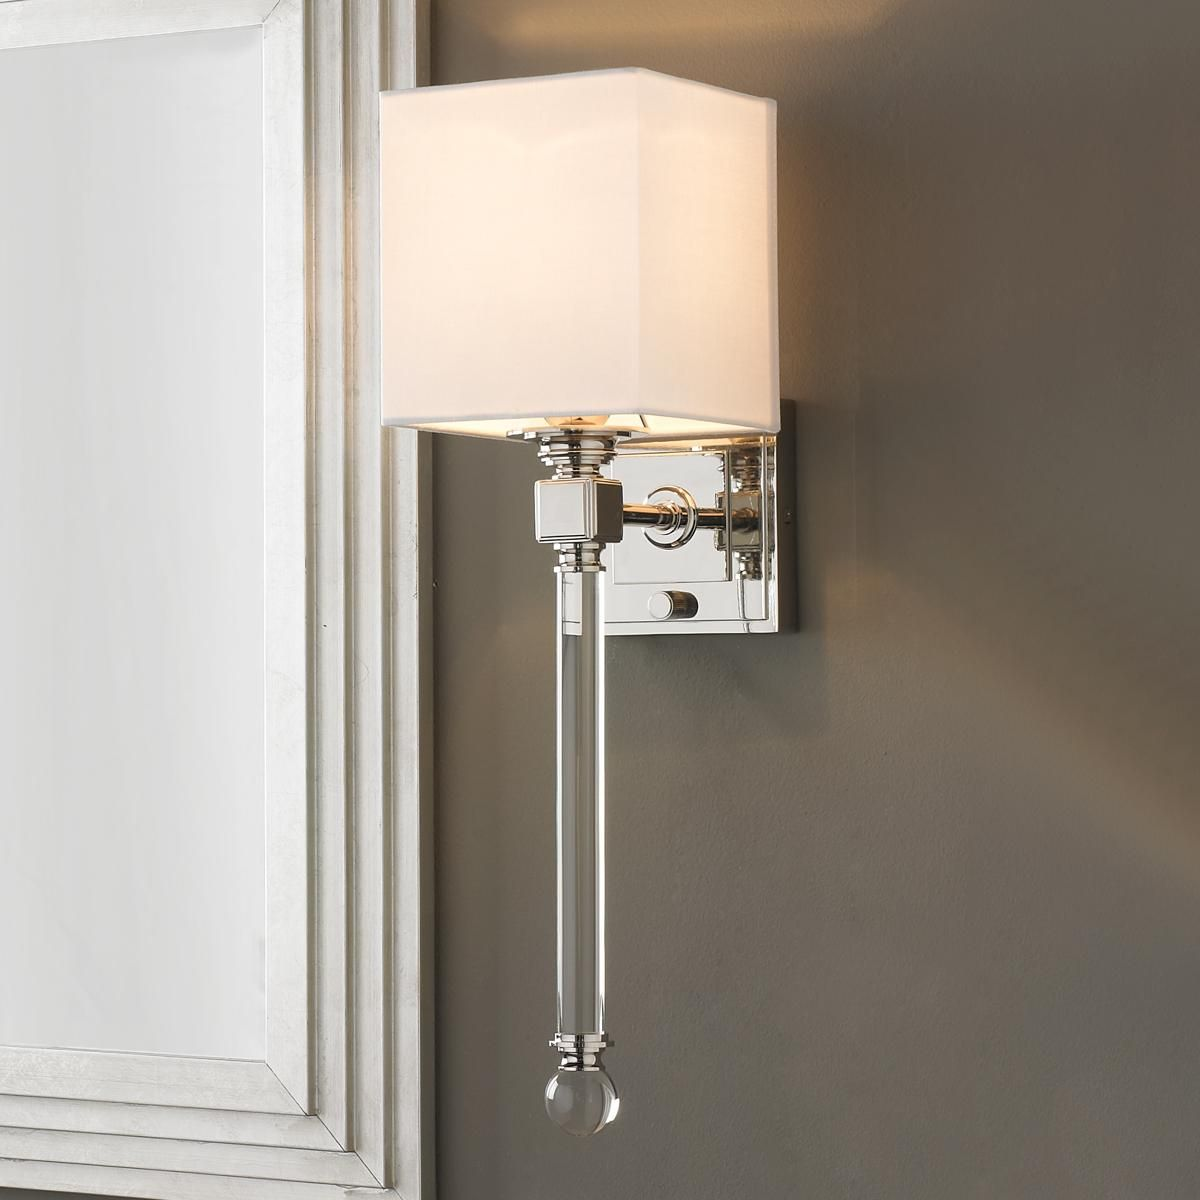 sconces bathroom vanity lighting wall sconce lighting the crystals